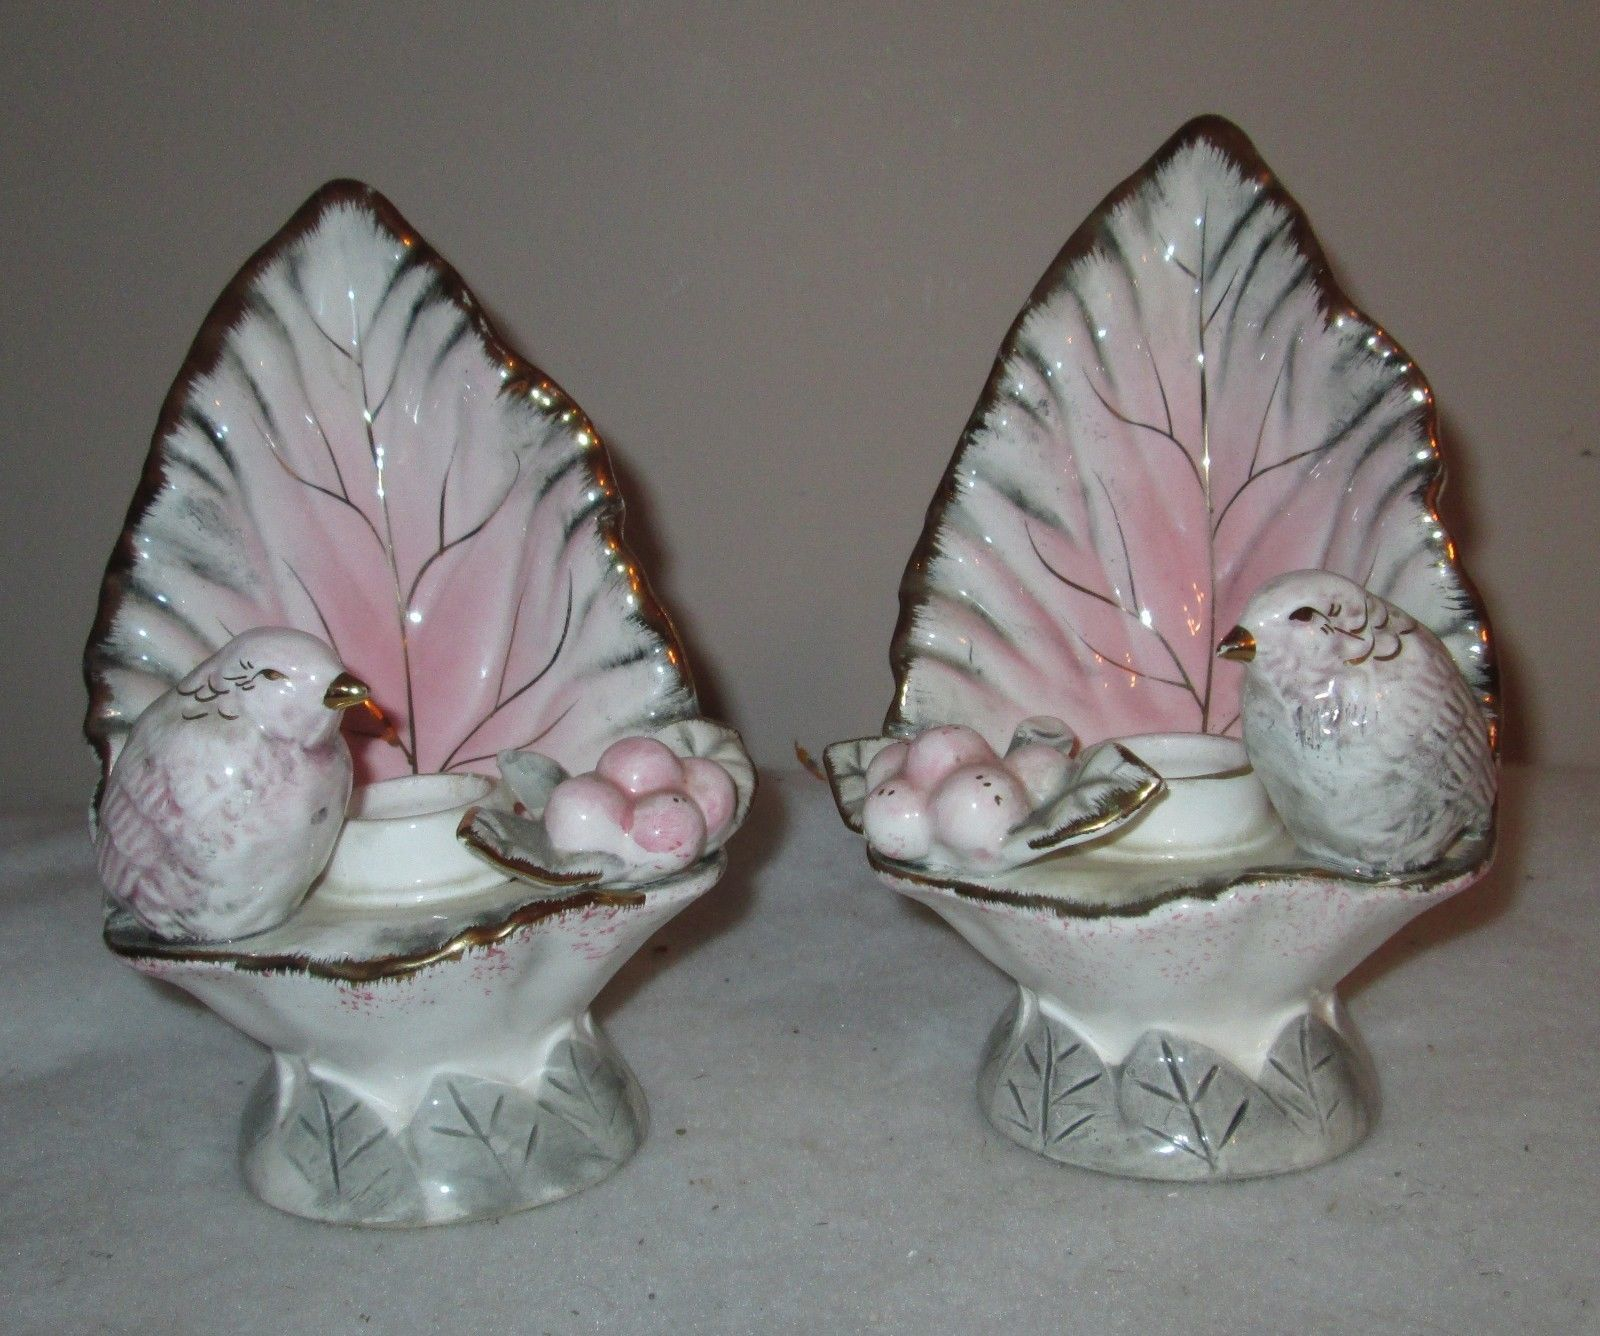 Ucagco Candle sticks & large Dish with Bird Figurine On Leaves and Berries